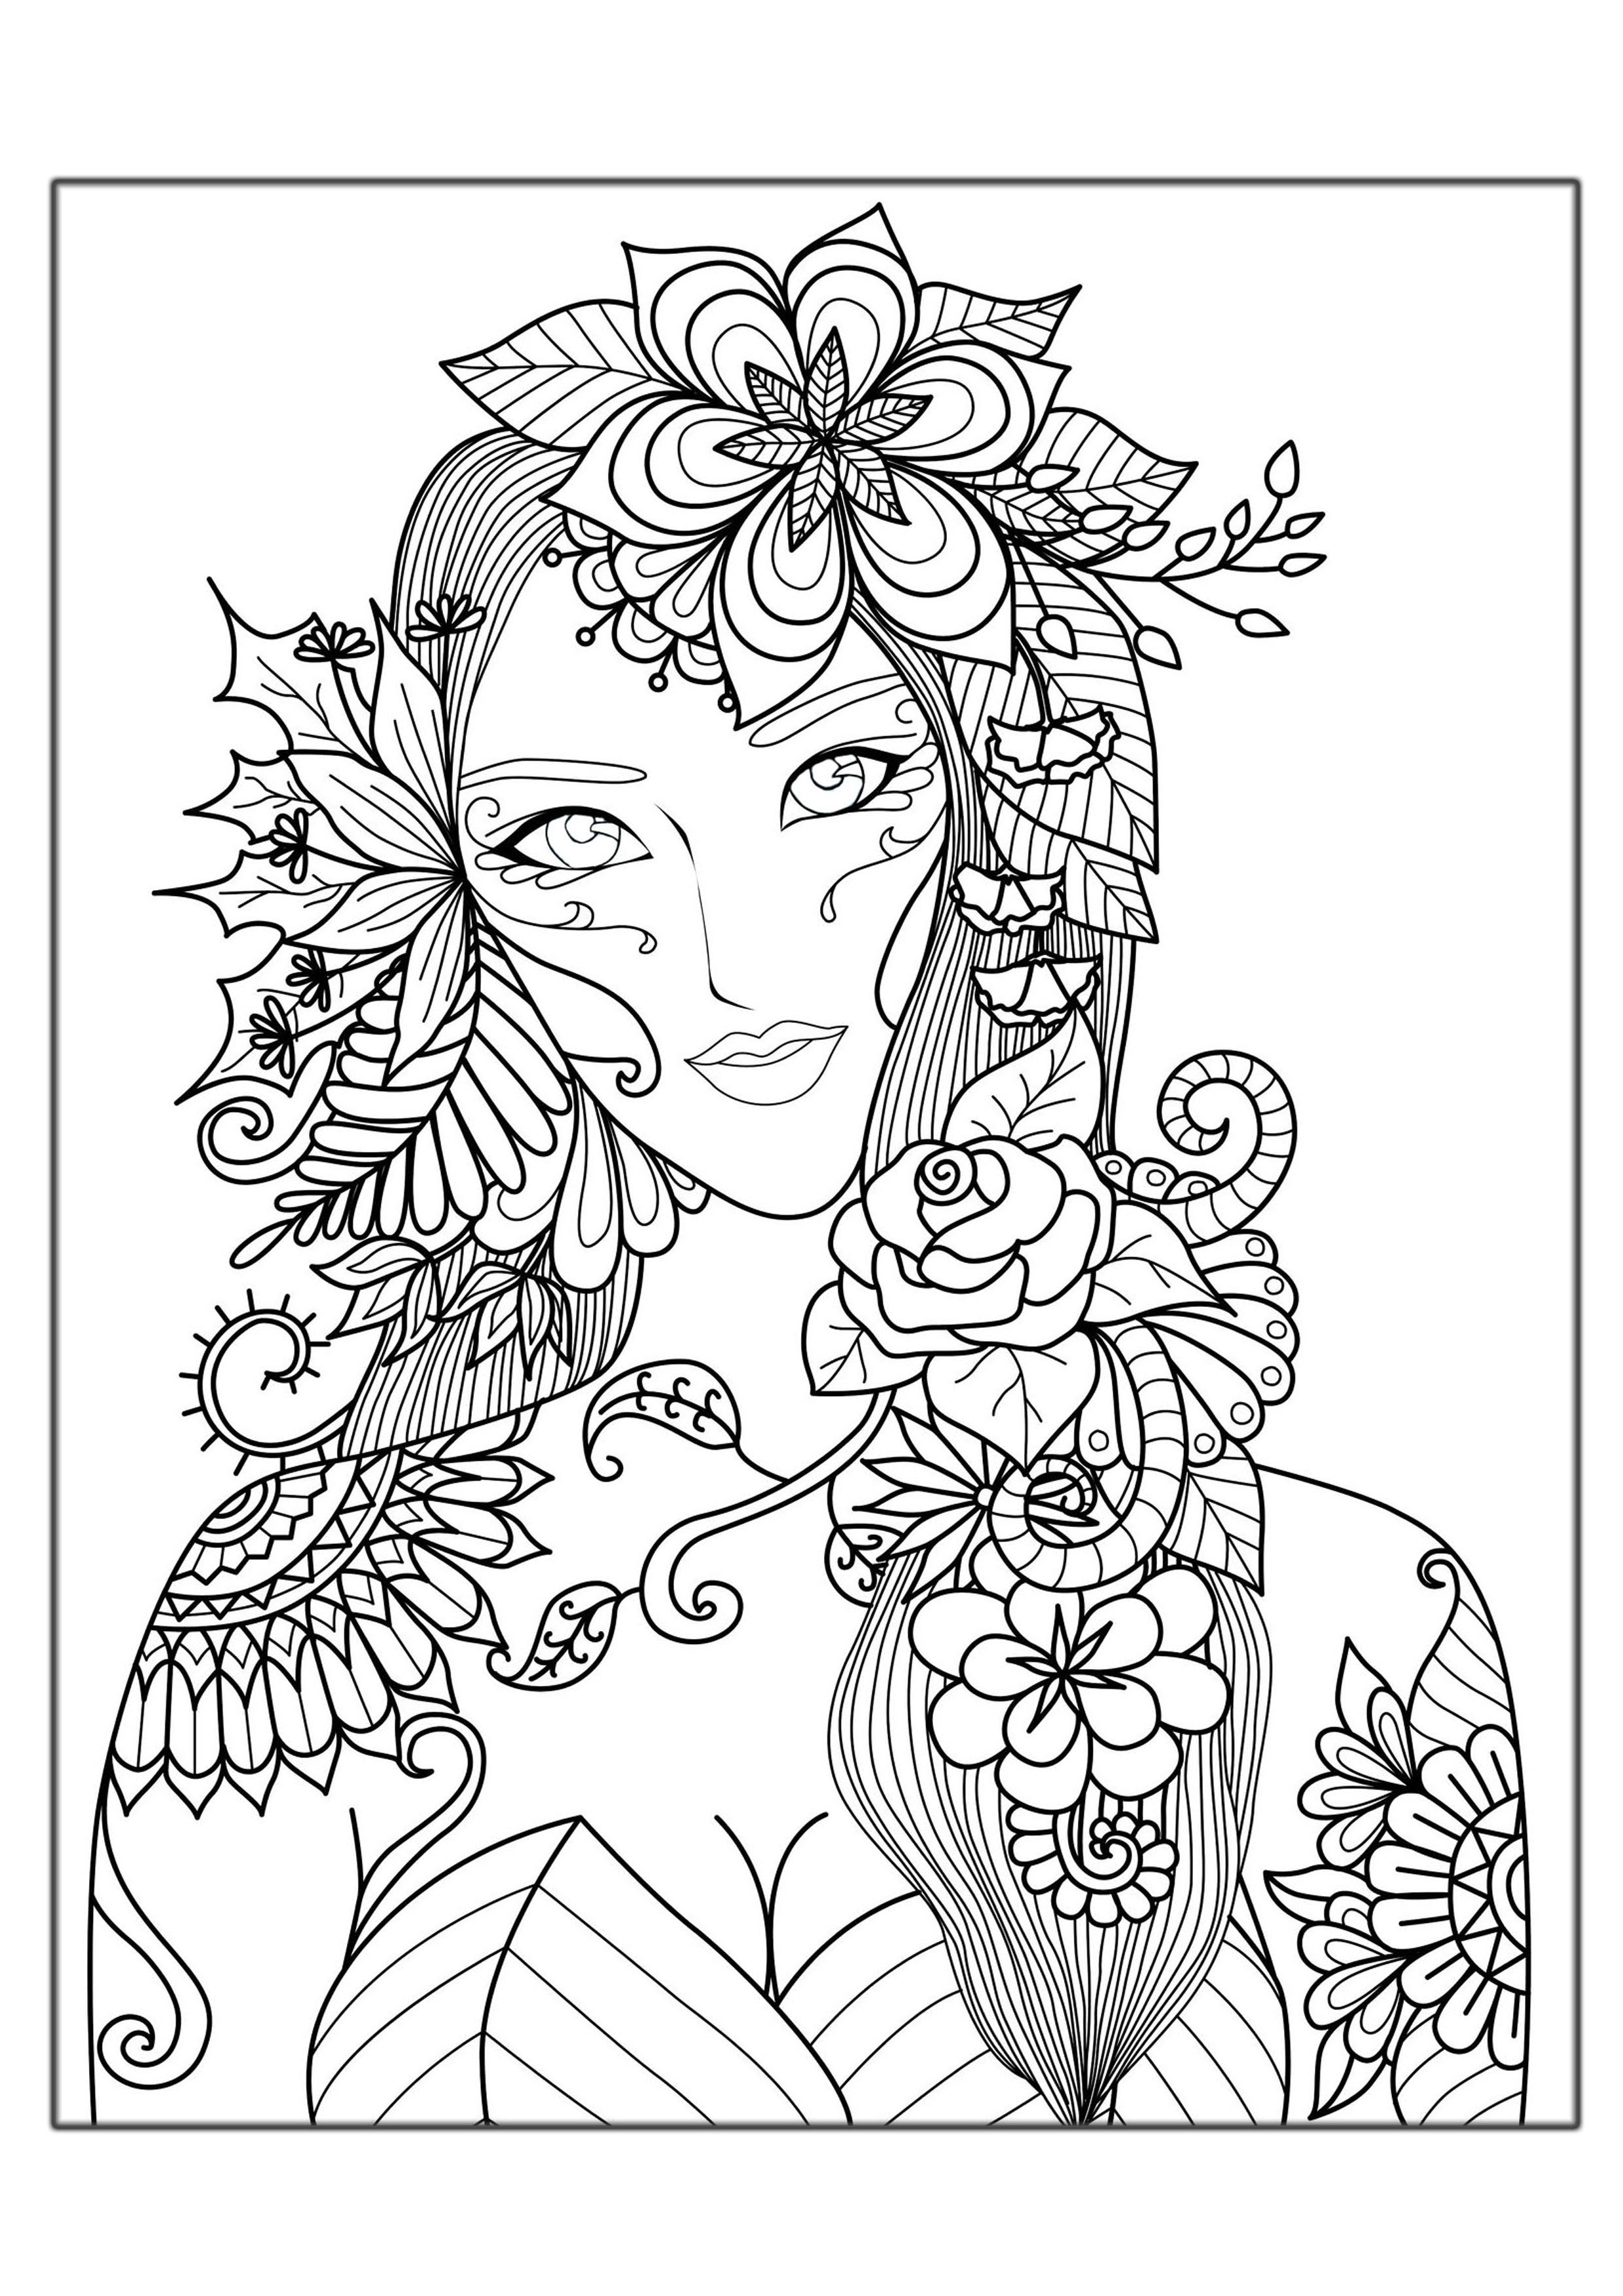 coloring pages online for adults peacock coloring pages for adults coloring home for adults pages online coloring